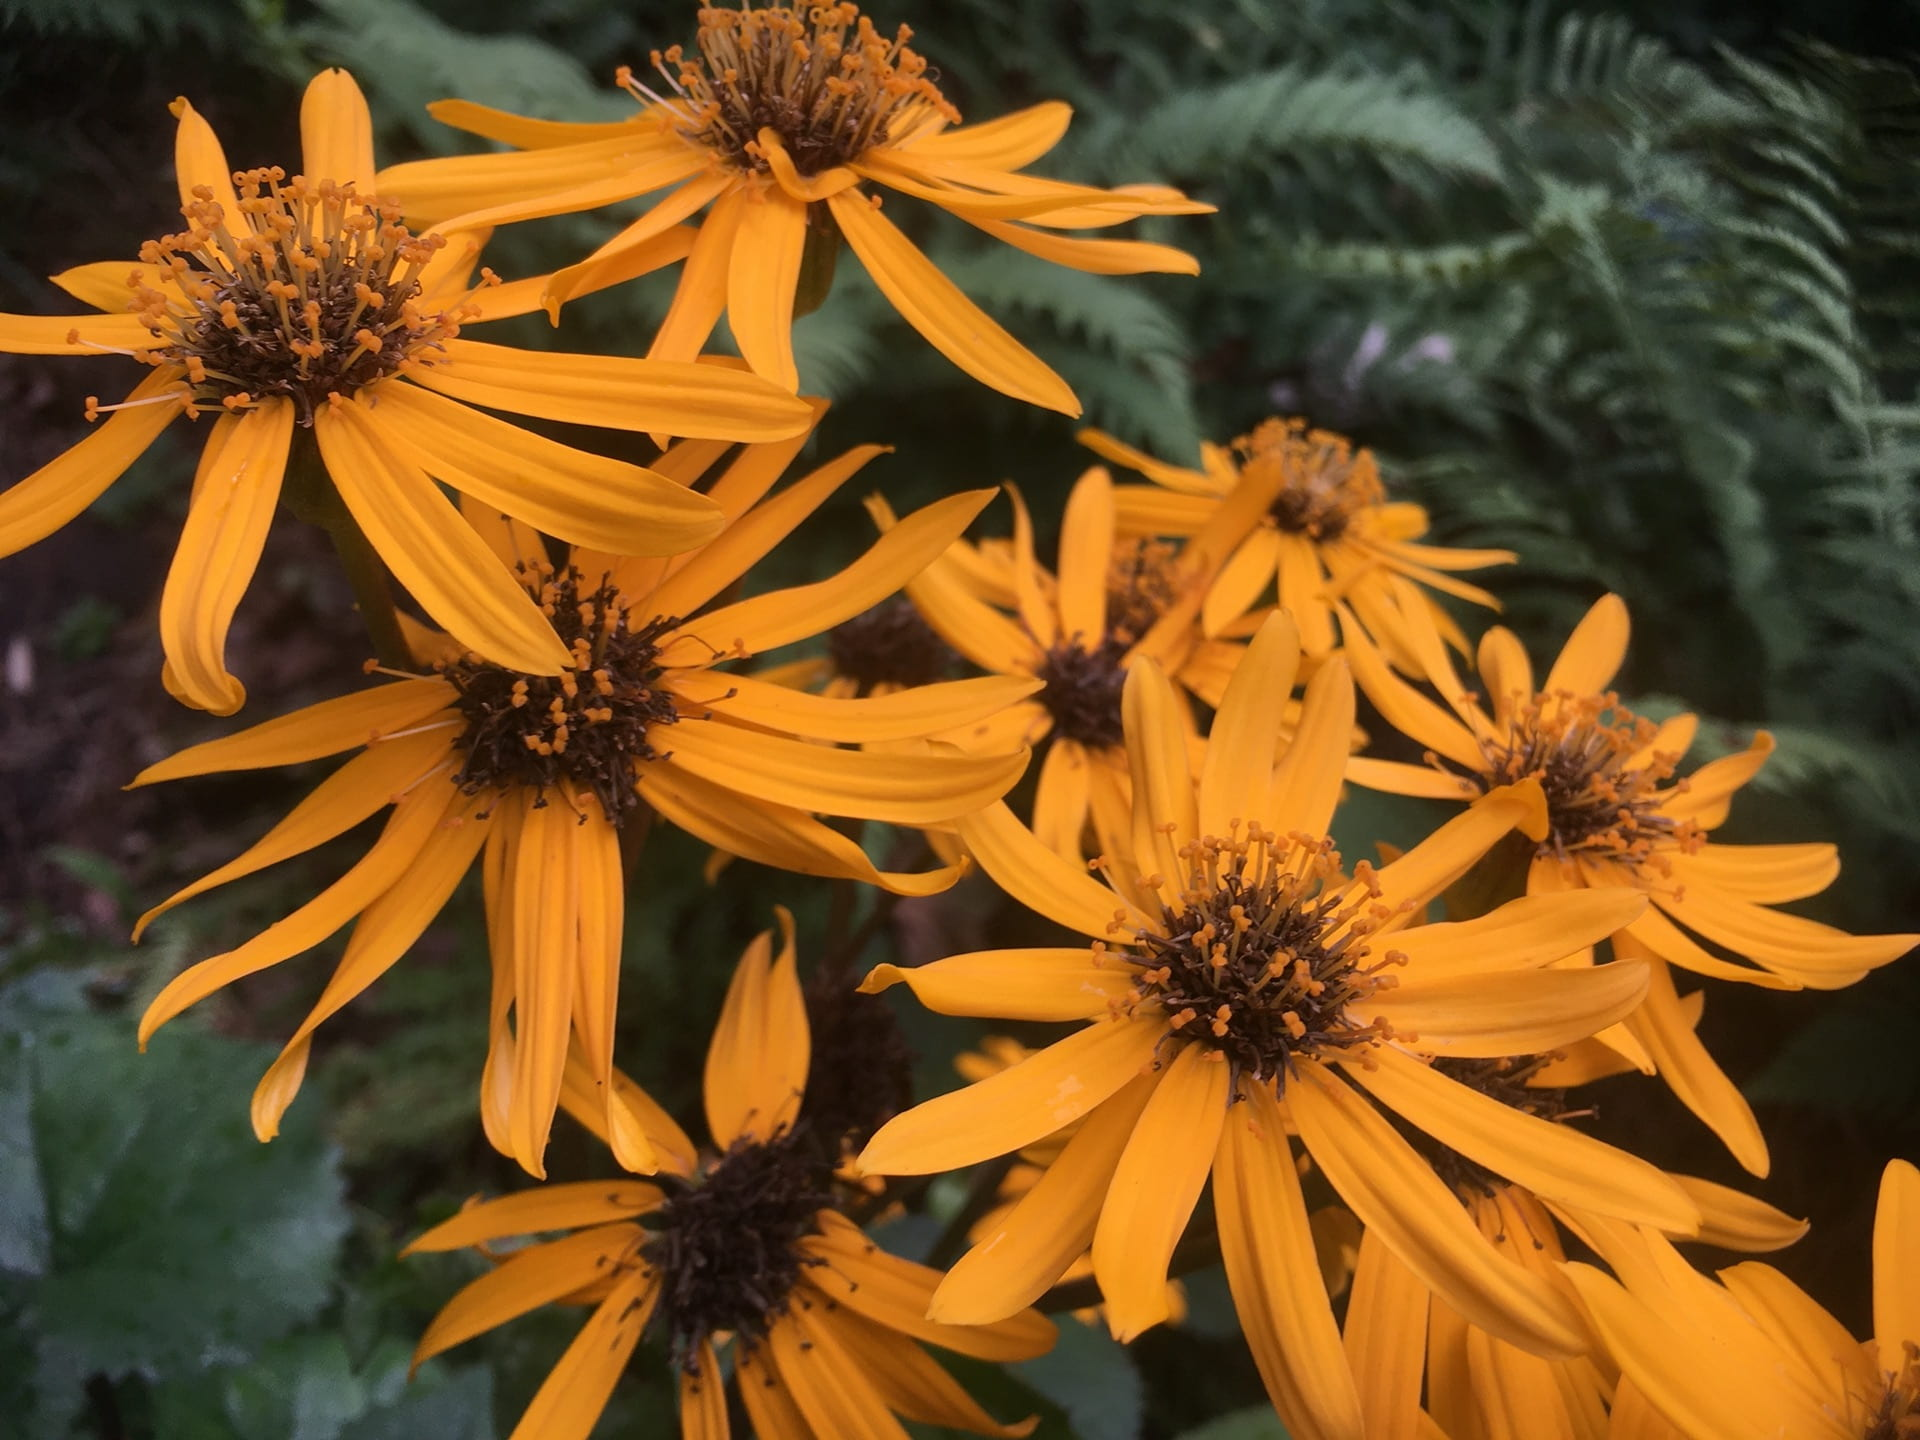 The neon orange flowers of Ligularia dentata brightens a shady corner of the park.